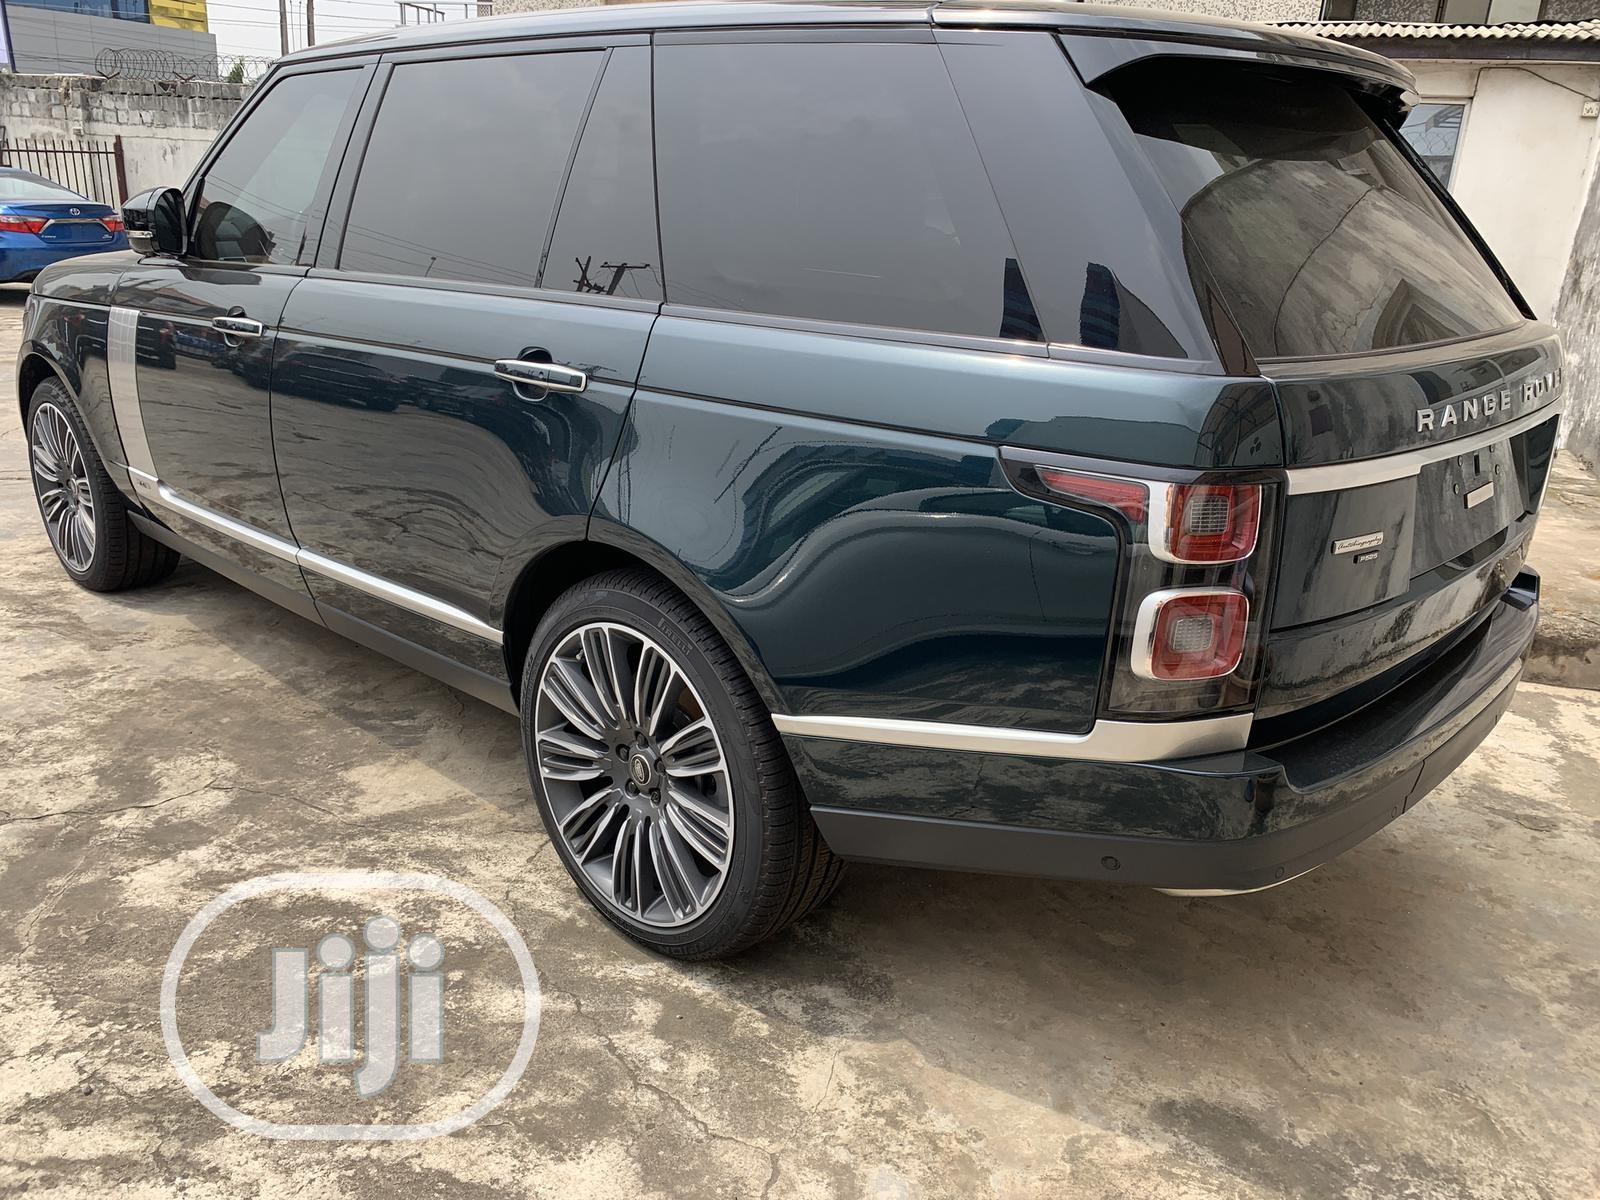 Archive: New Land Rover Range Rover Vogue 2020 Green